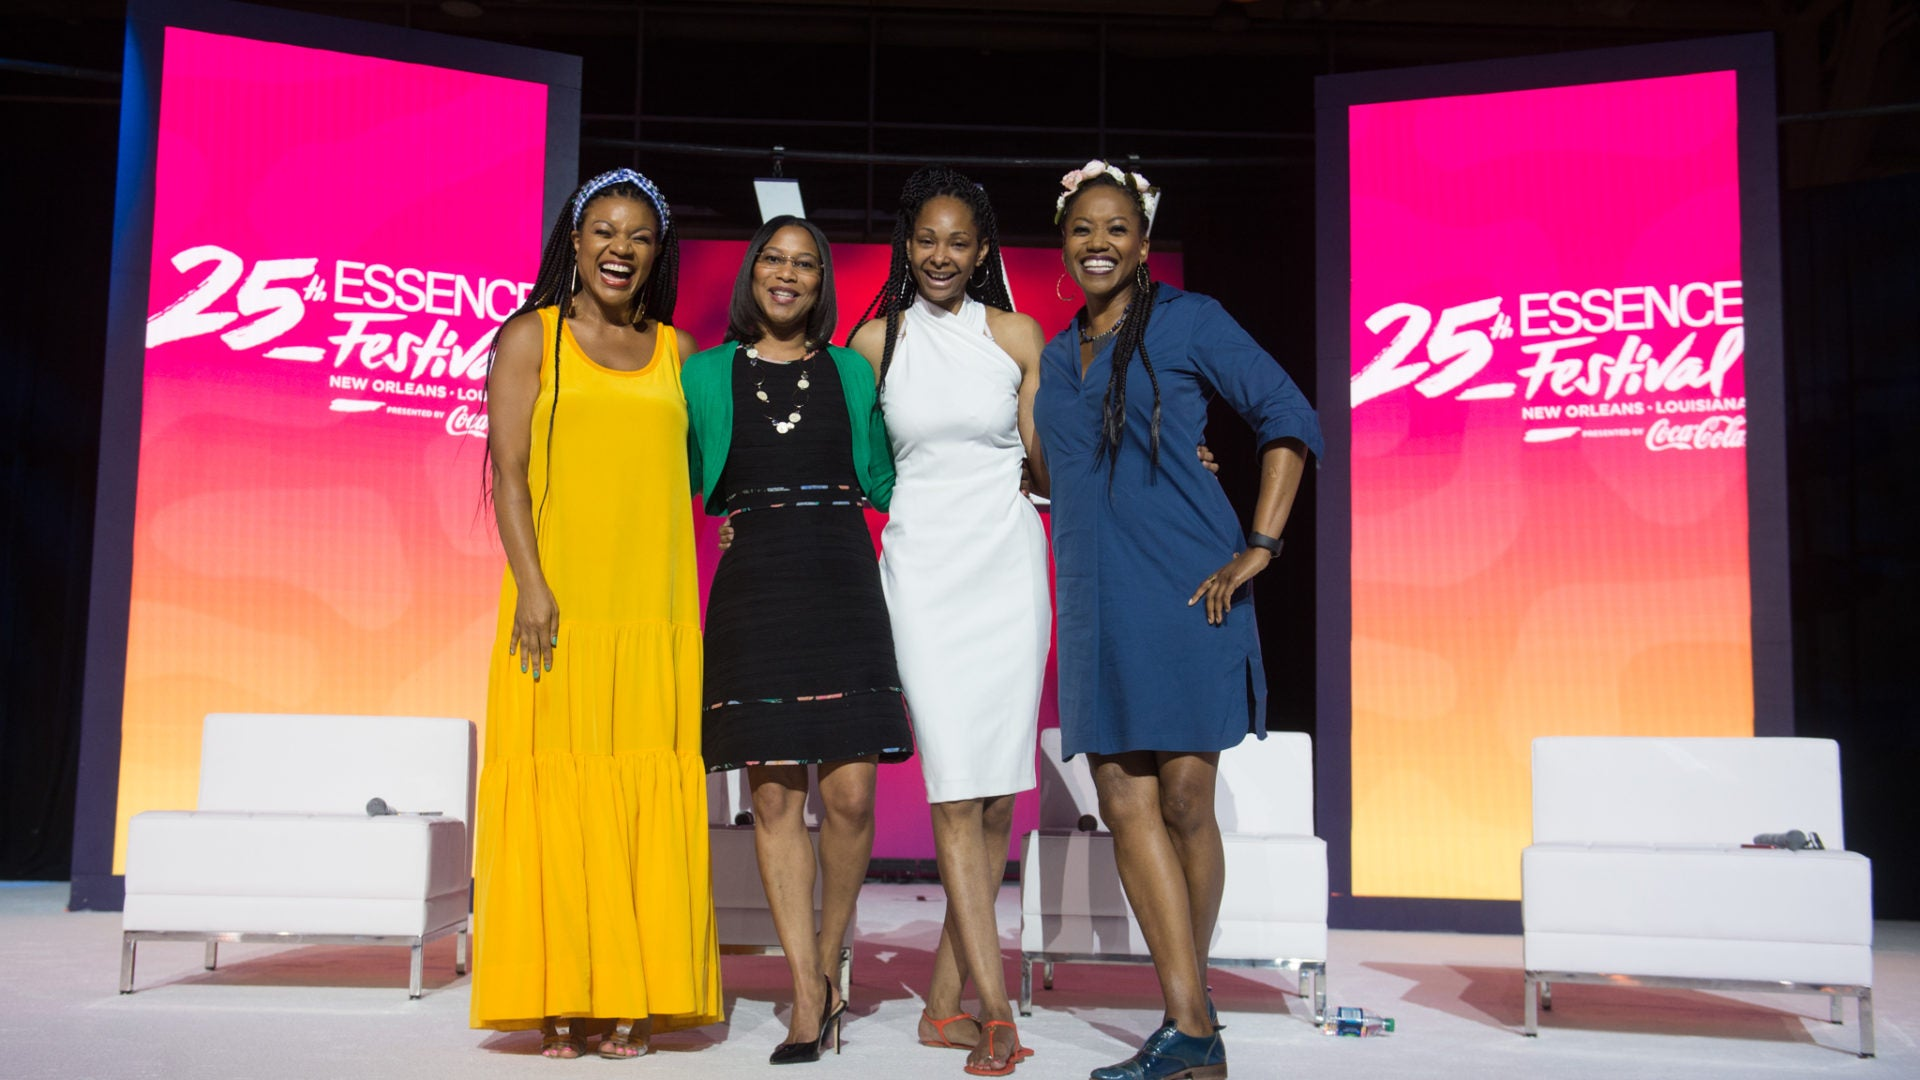 Erika Alexander, Tracey Patterson And Bari Williams Call On Black Women To Be The Future Of Tech